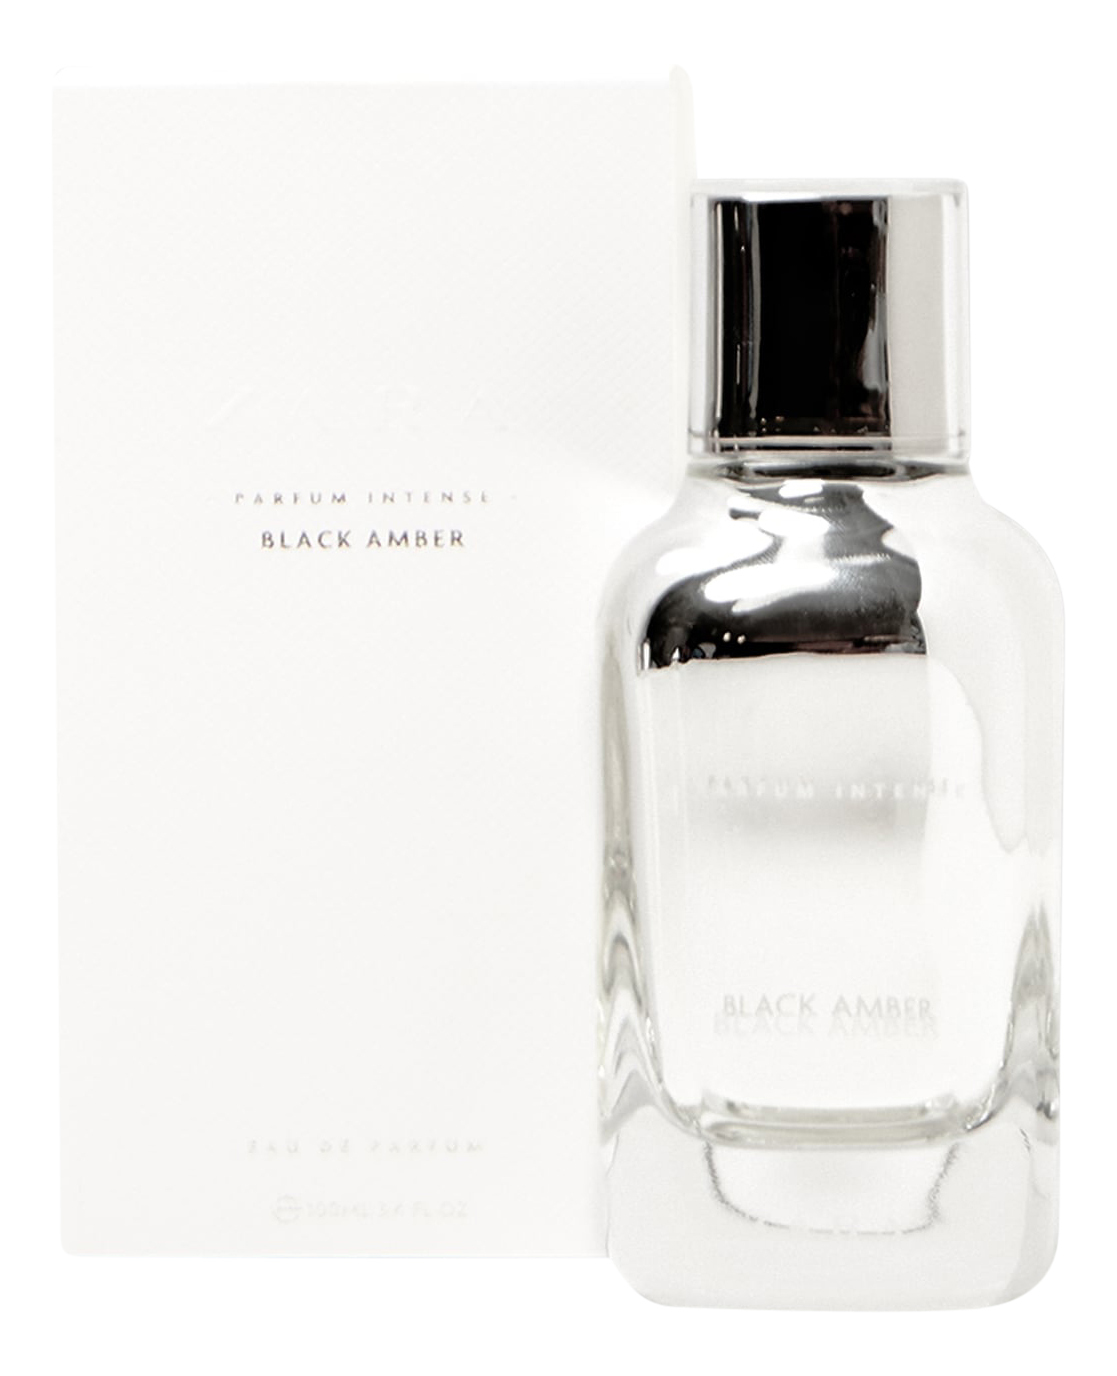 Zara Black Amber Parfum Intense Eau De Parfum Reviews